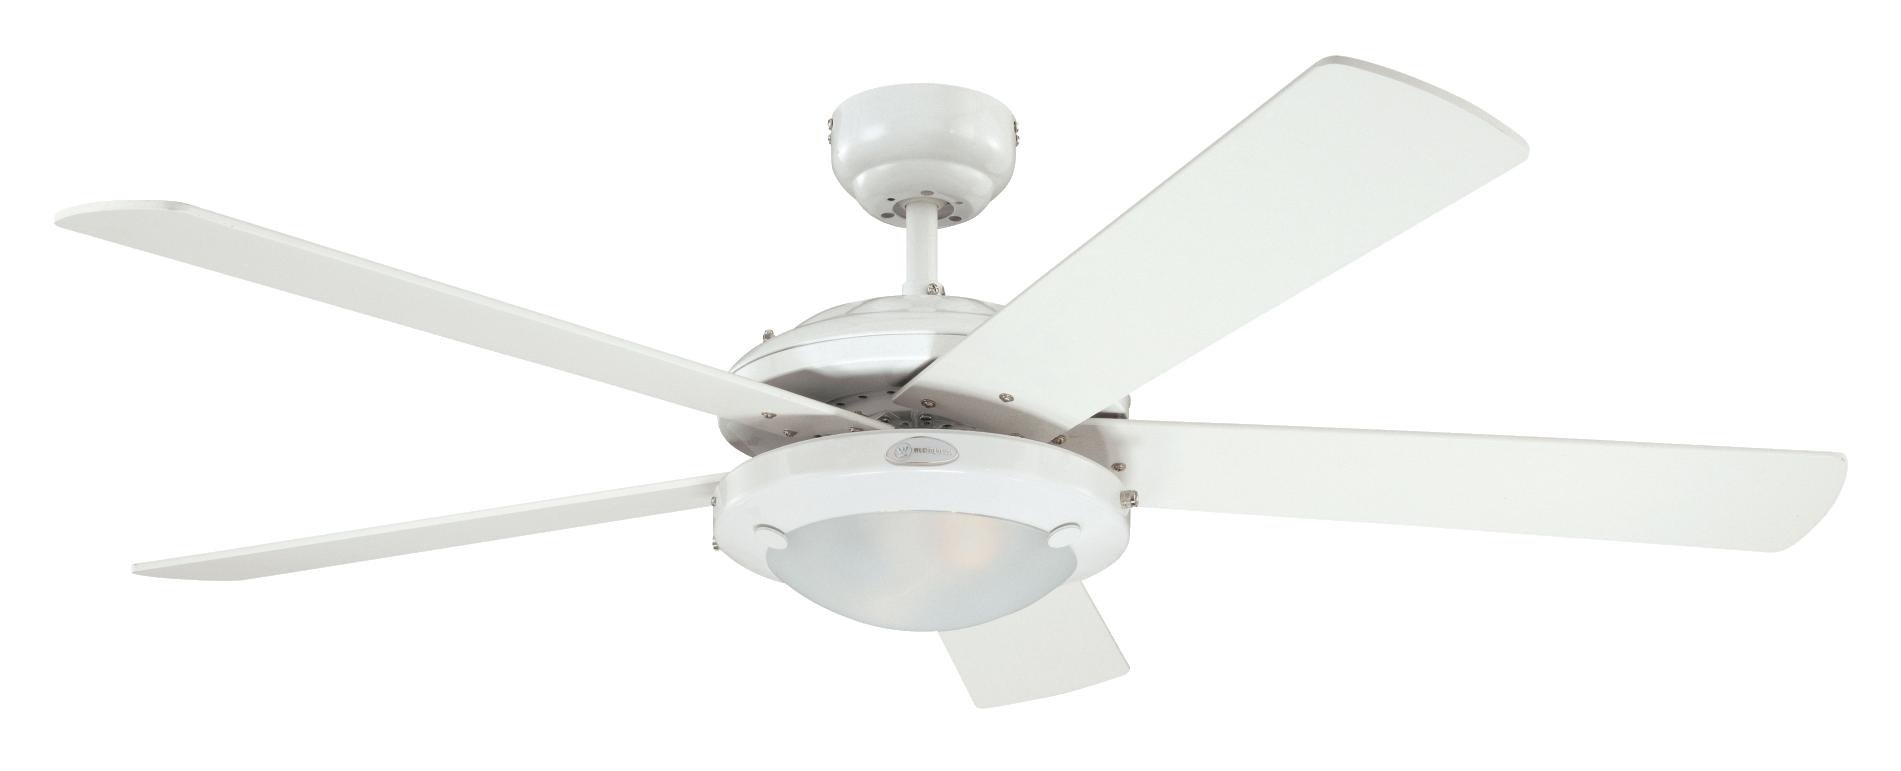 51yzQPEwcML - Westinghouse Ceiling Fans 78017 Comet One-Light 132 cm Five Indoor Ceiling Fan, Frosted Glass, White Finish with…